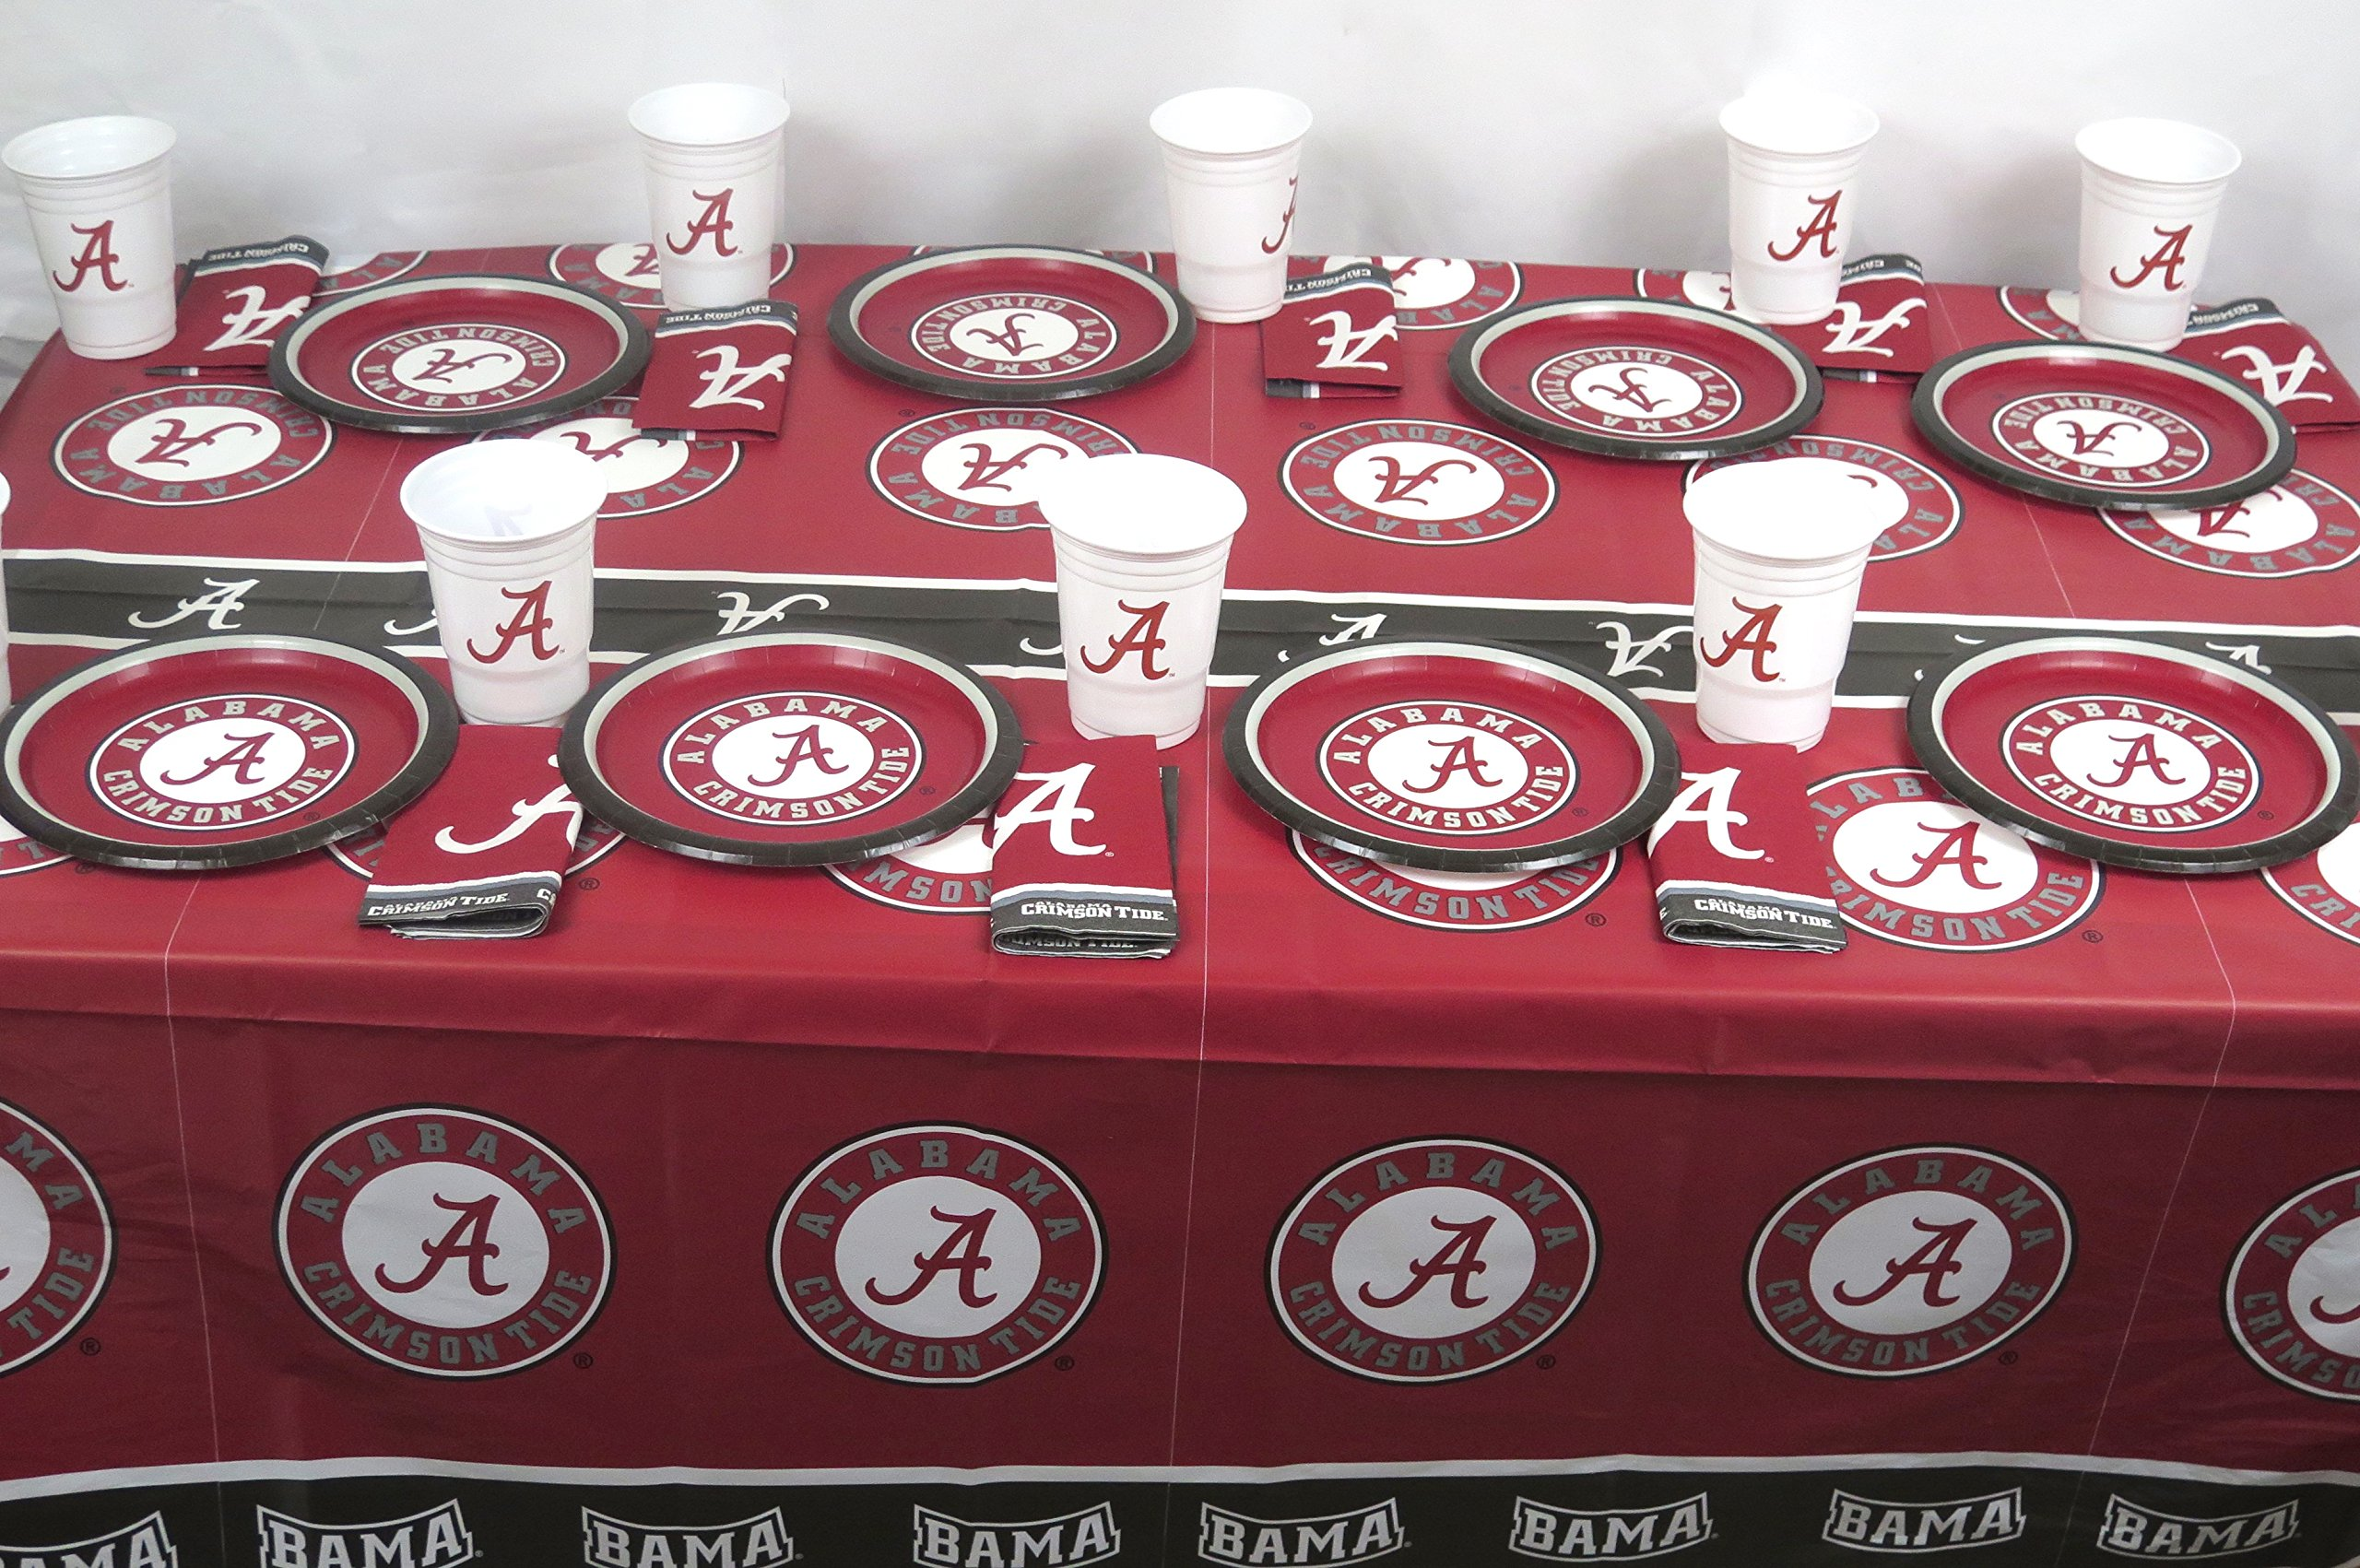 University of Alabama Crimson Tide 49 Pieces Patty Set, Includes Plates, Napkins, Jumbo Cups and a Tablecloth.